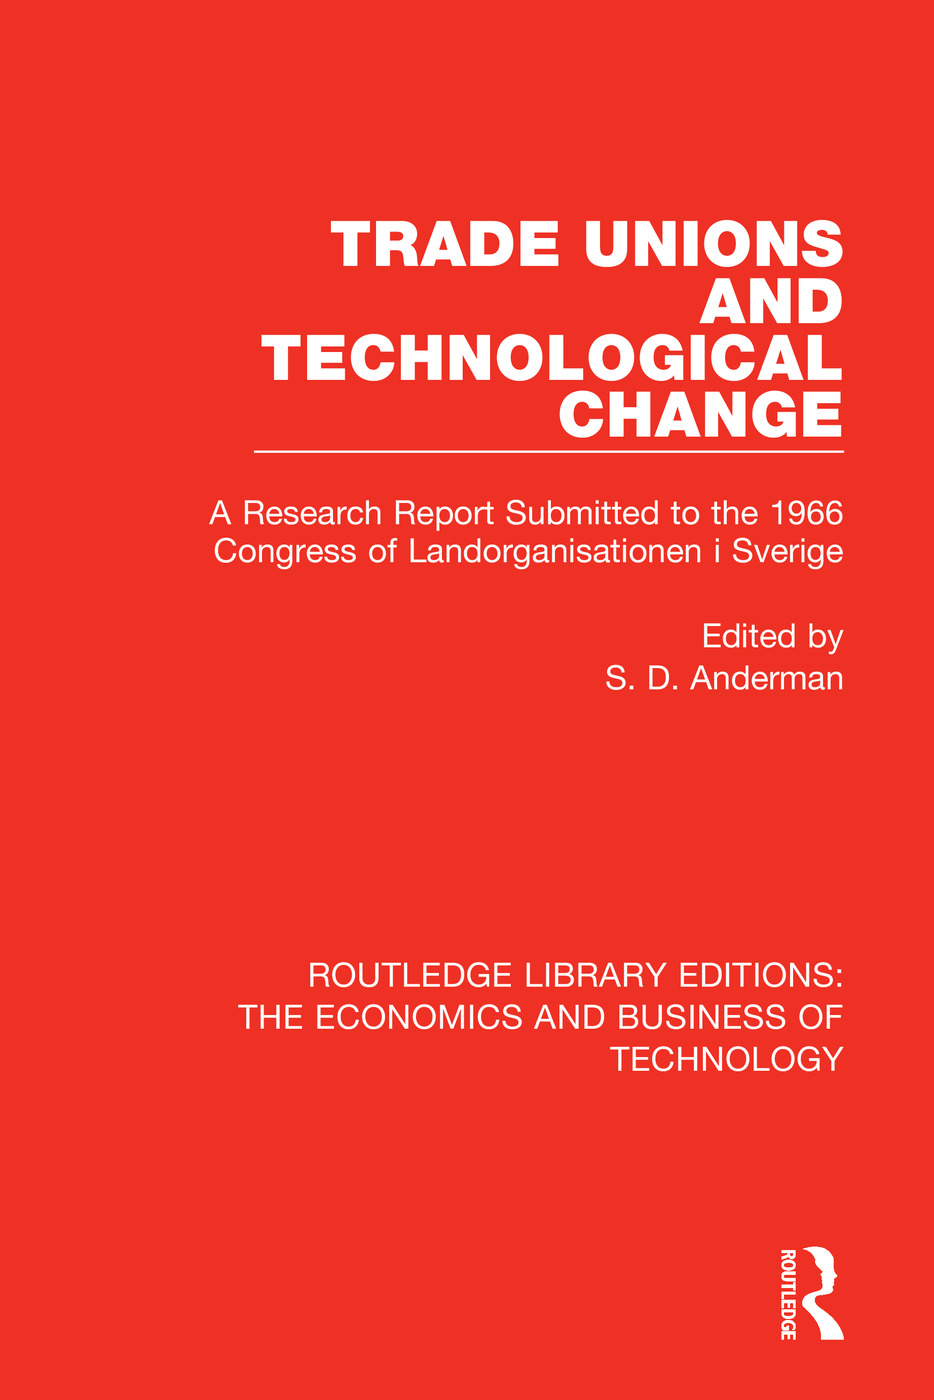 Trade Unions and Technological Change: A Research Report Submitted to the 1966 Congress of Landsorganistionen i Sverige book cover